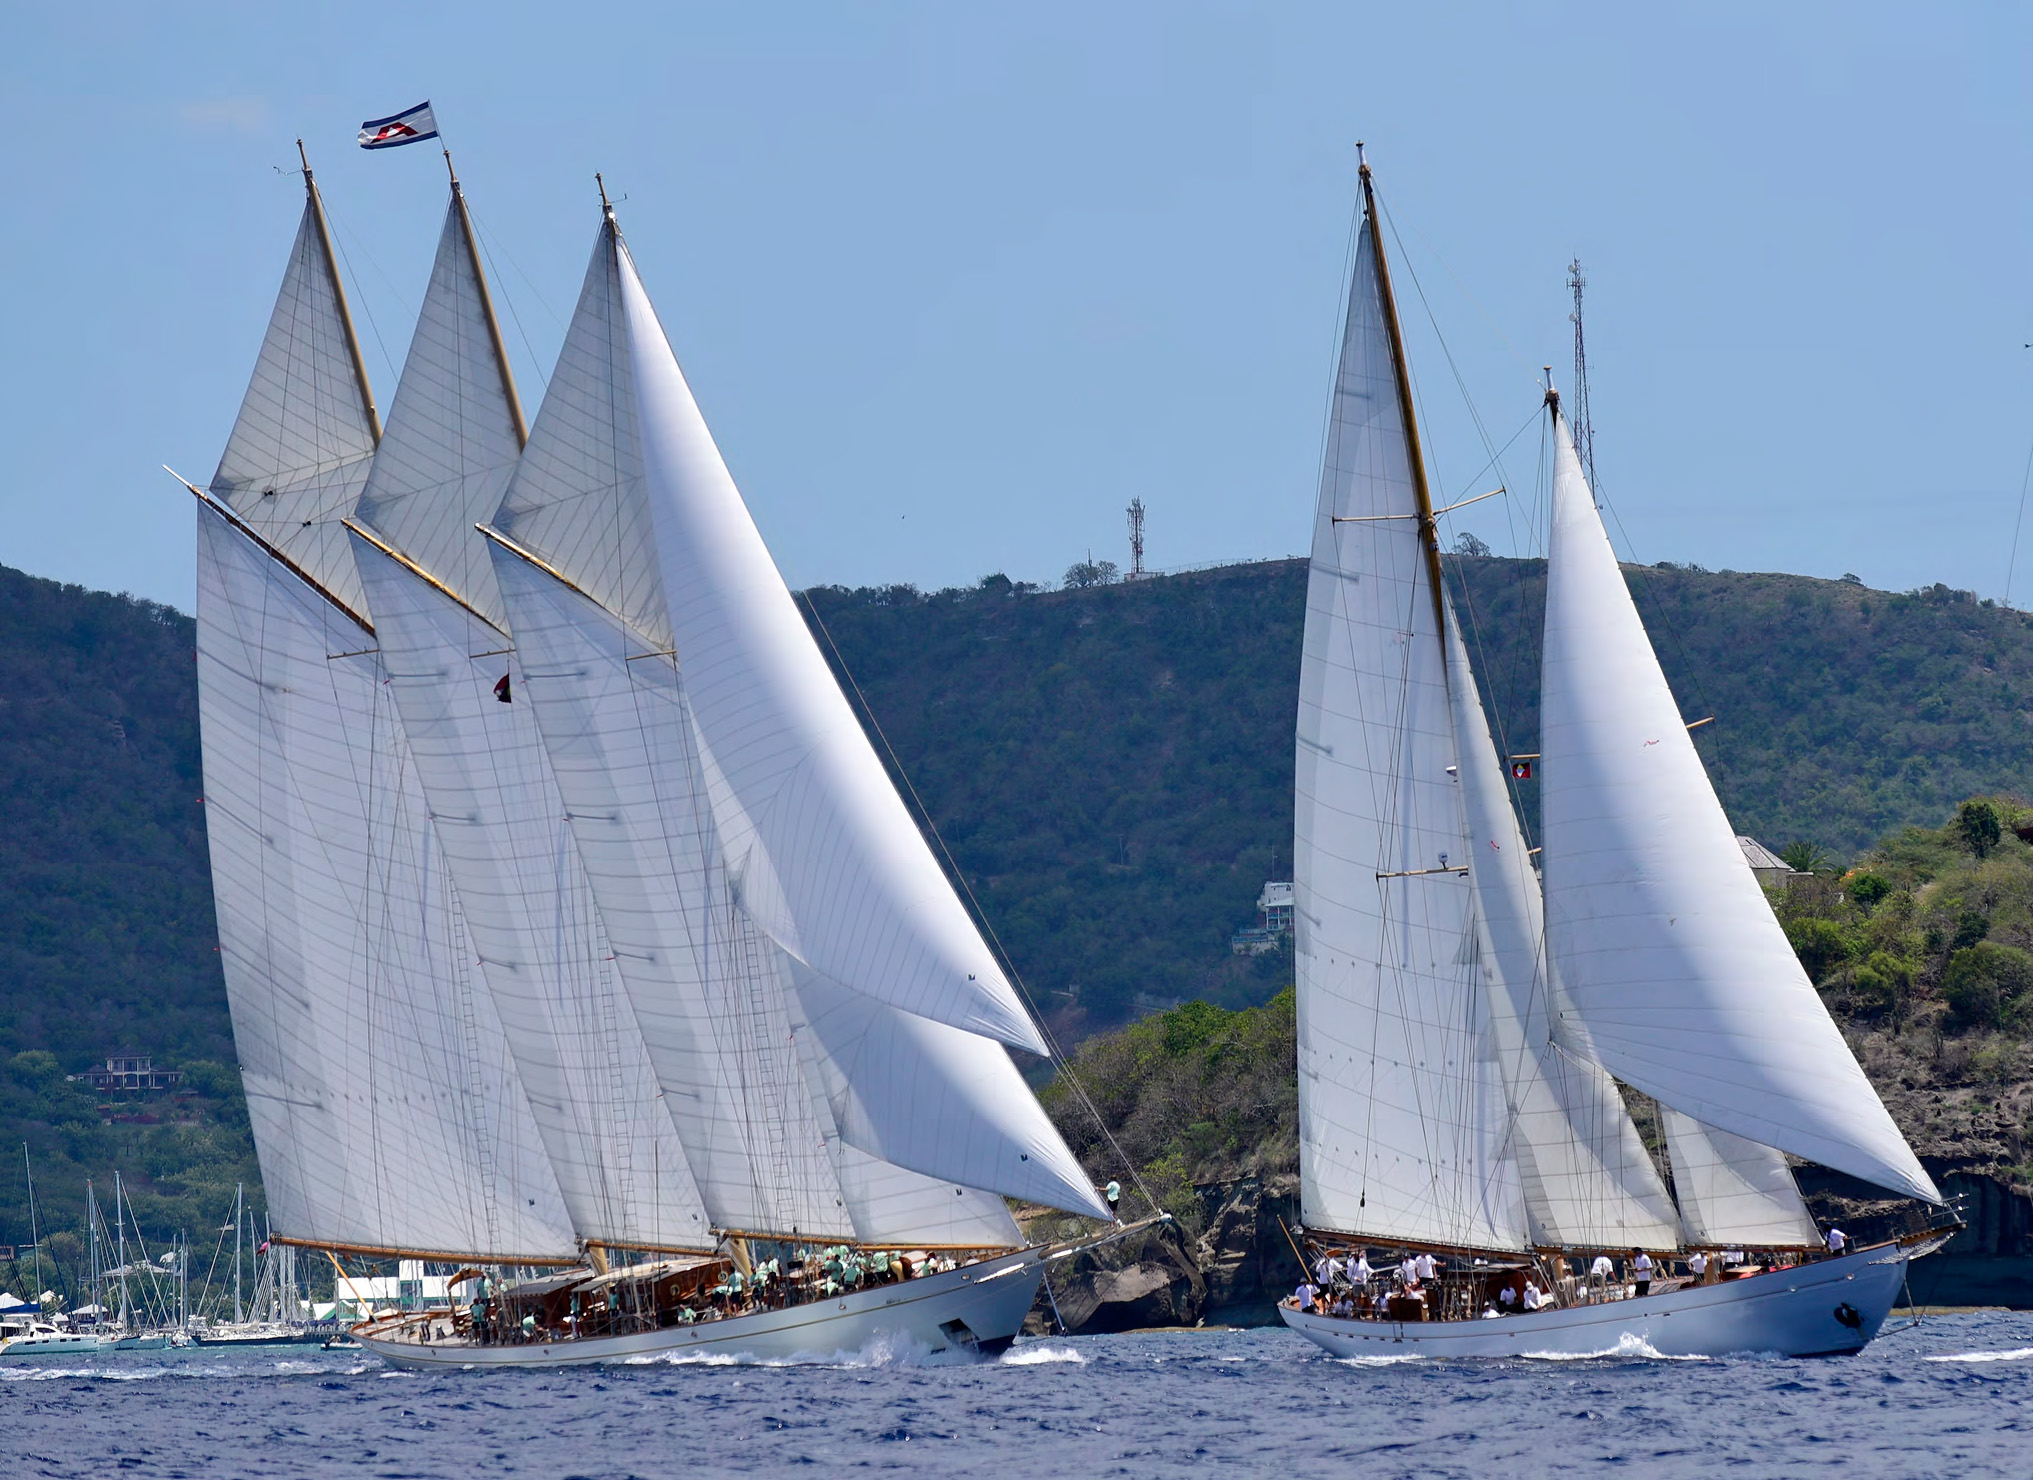 Eros enjoys a thrilling start with 200 ft. three-masted schooner Adix at the Antigua Classic Regatta. Photos by Mark Krasnow.